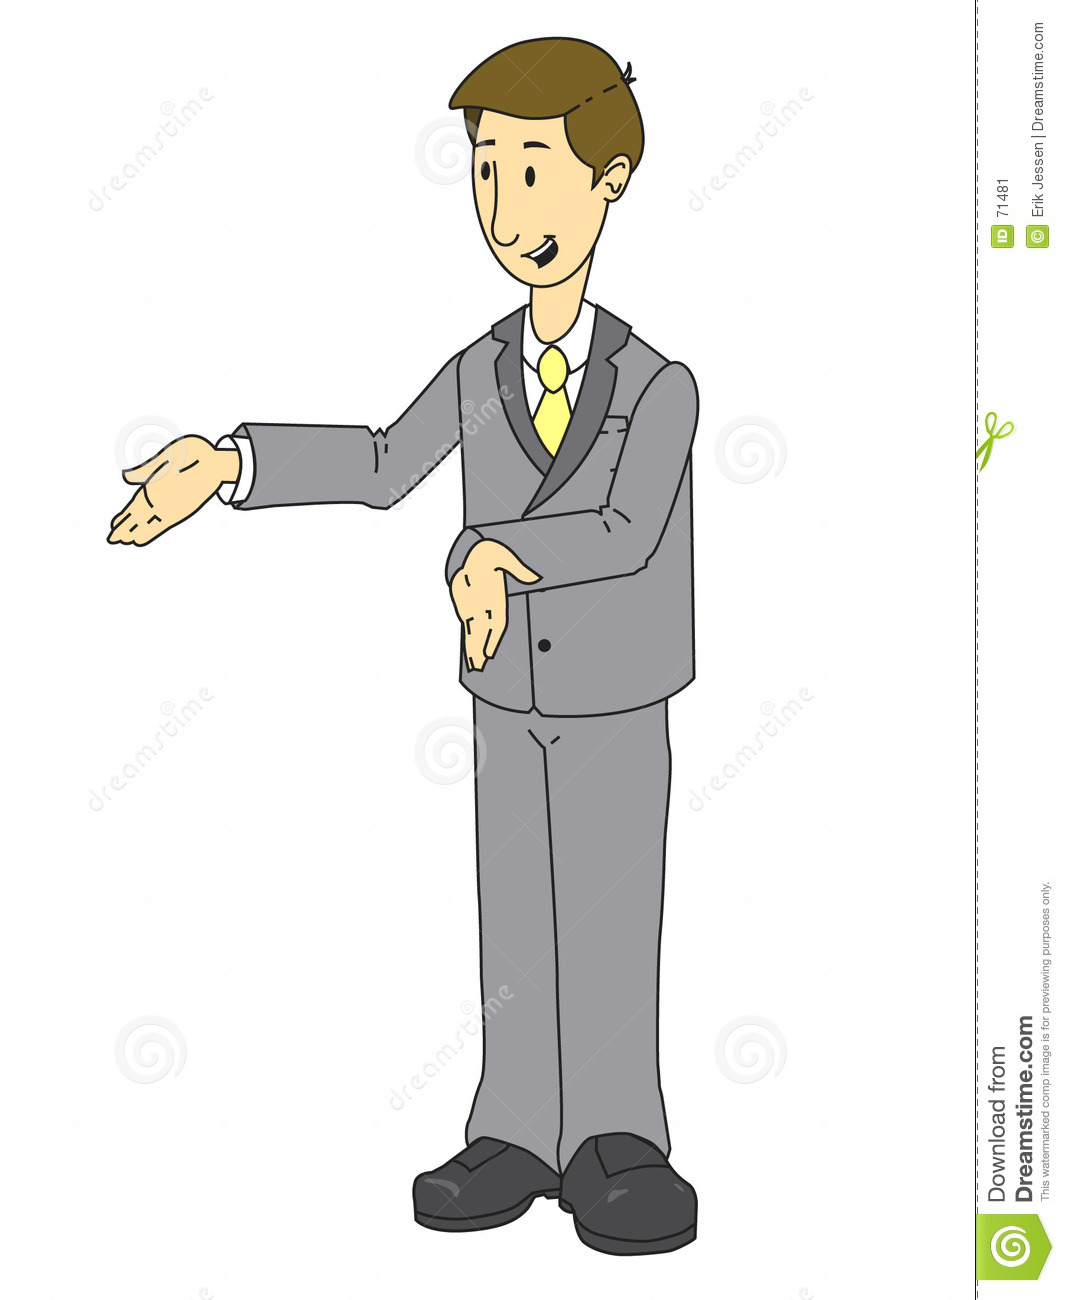 Sales Person Stock Image.